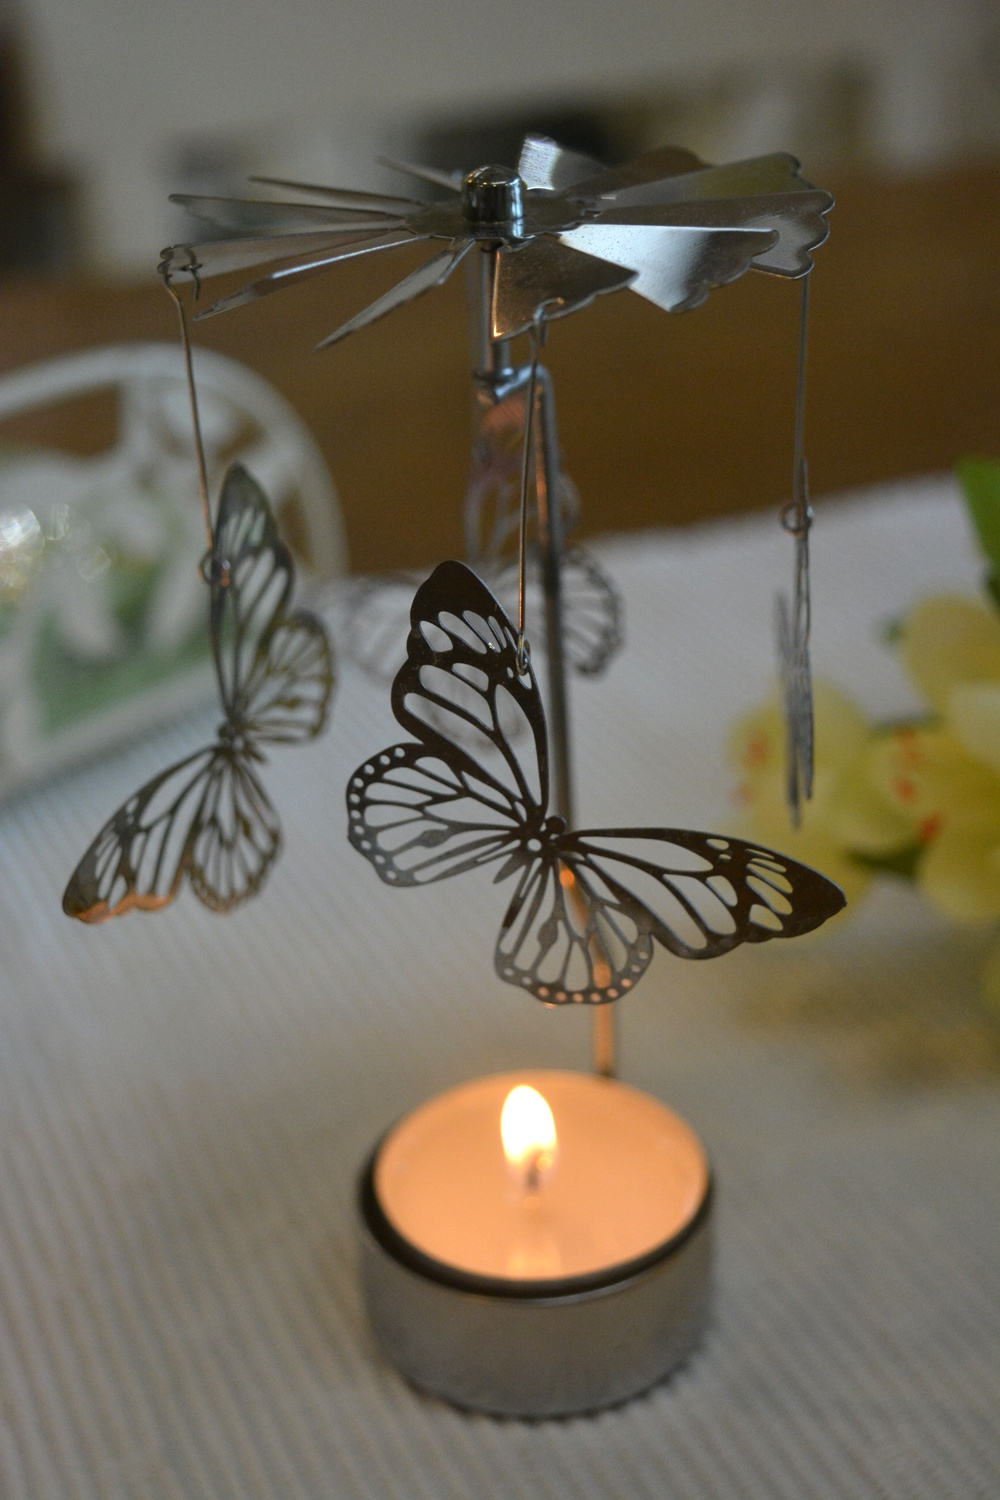 Heat Activated Spinning Tea Light Holder  €9.00